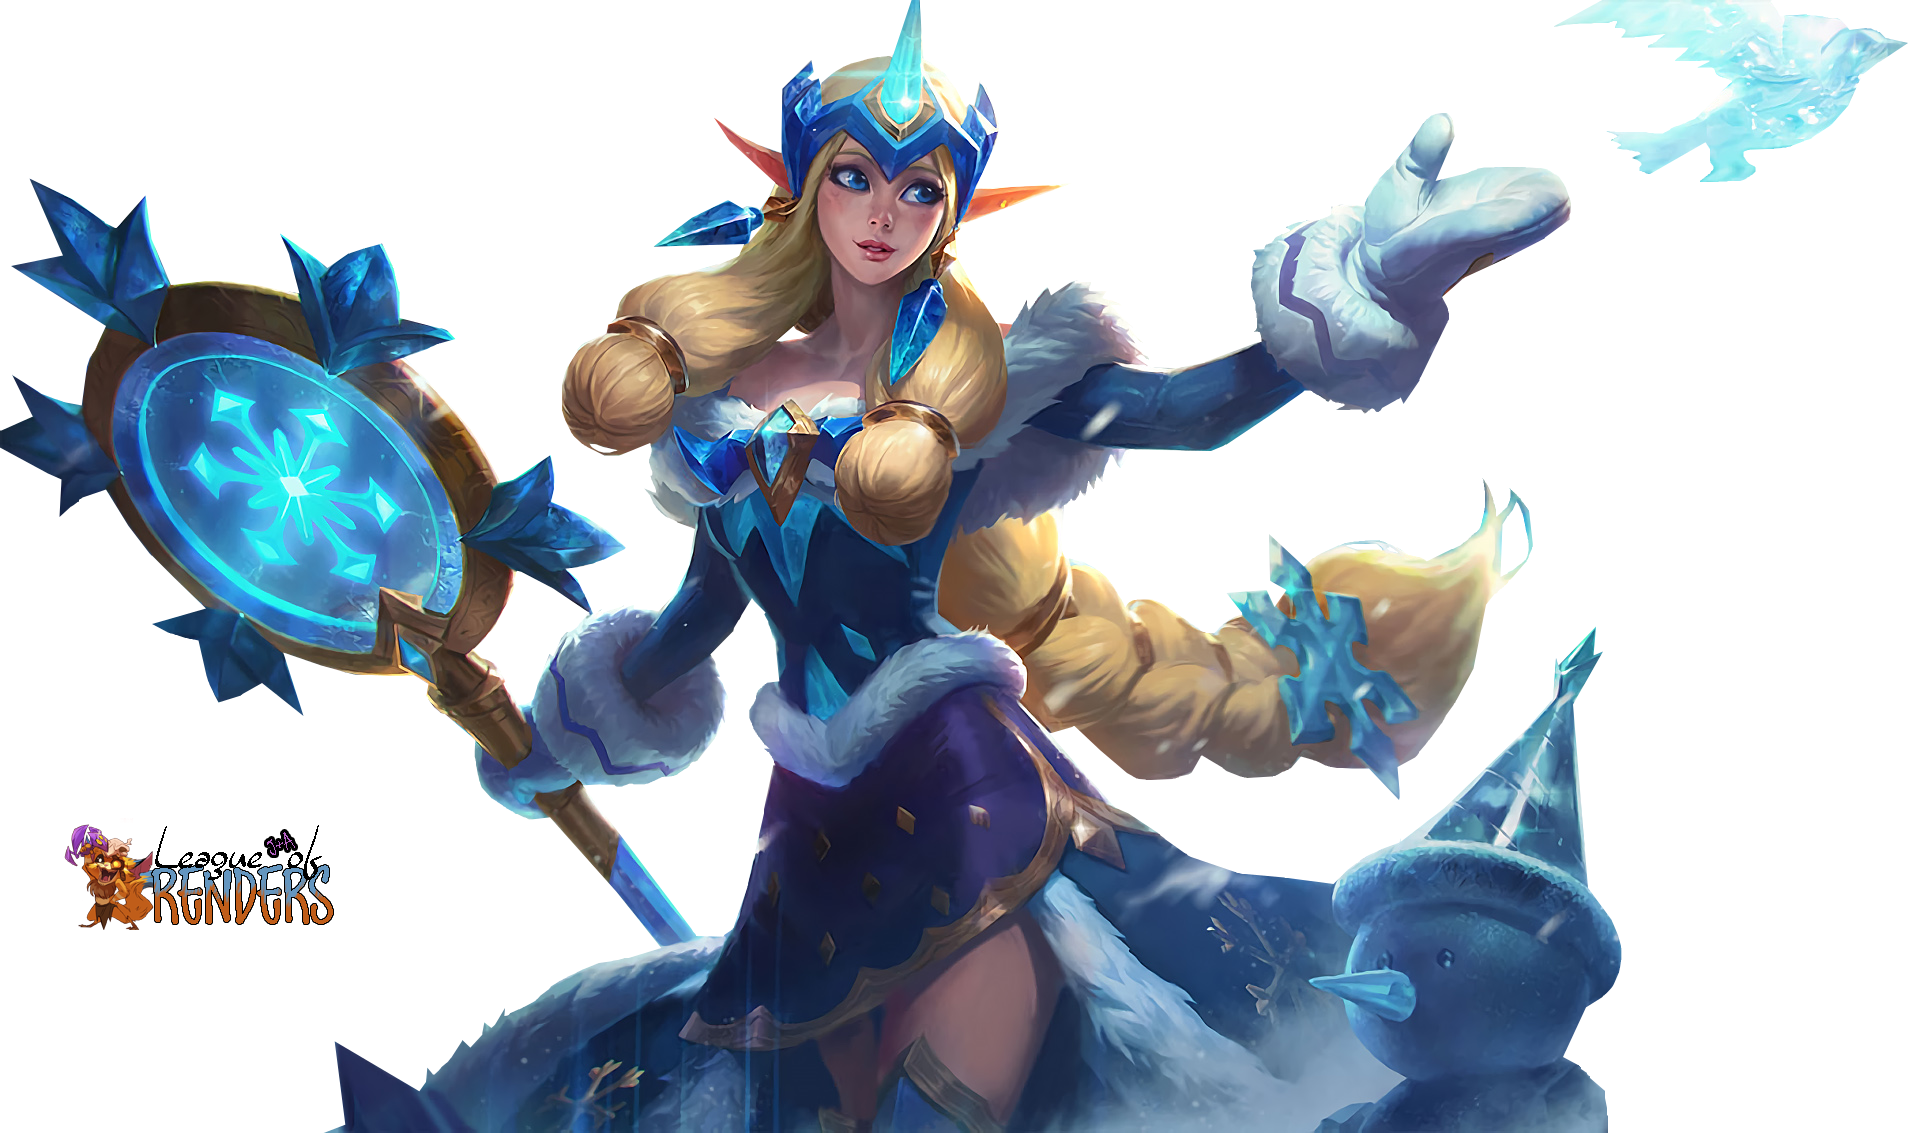 RENDER SKIN Winter Wonder Soraka